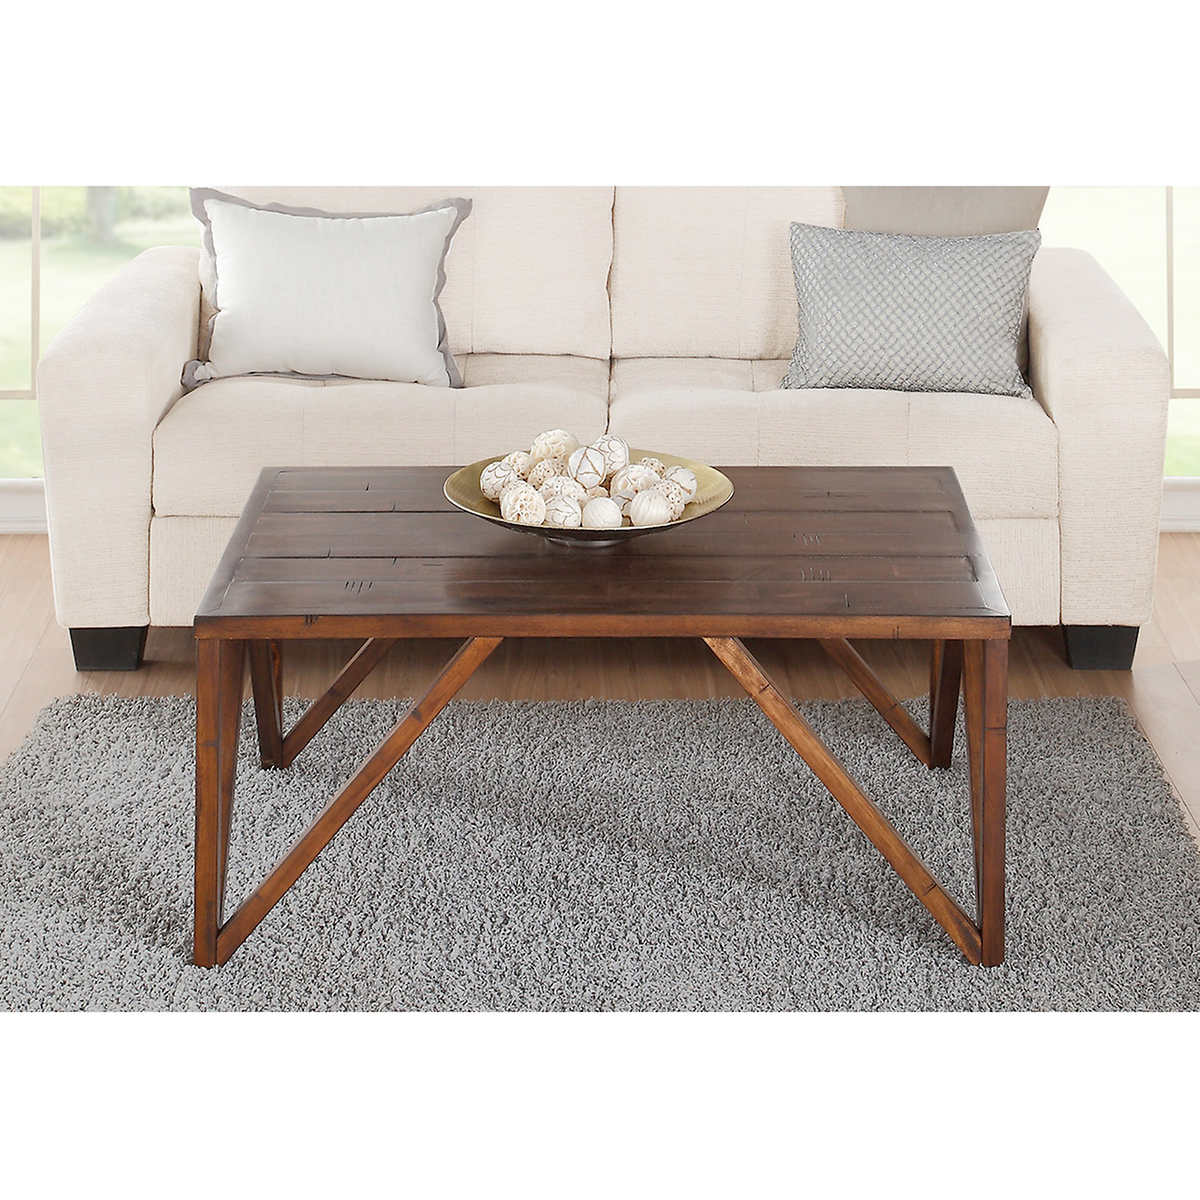 Bali coffee table bali coffee table item 1071158 click to zoom geotapseo Image collections